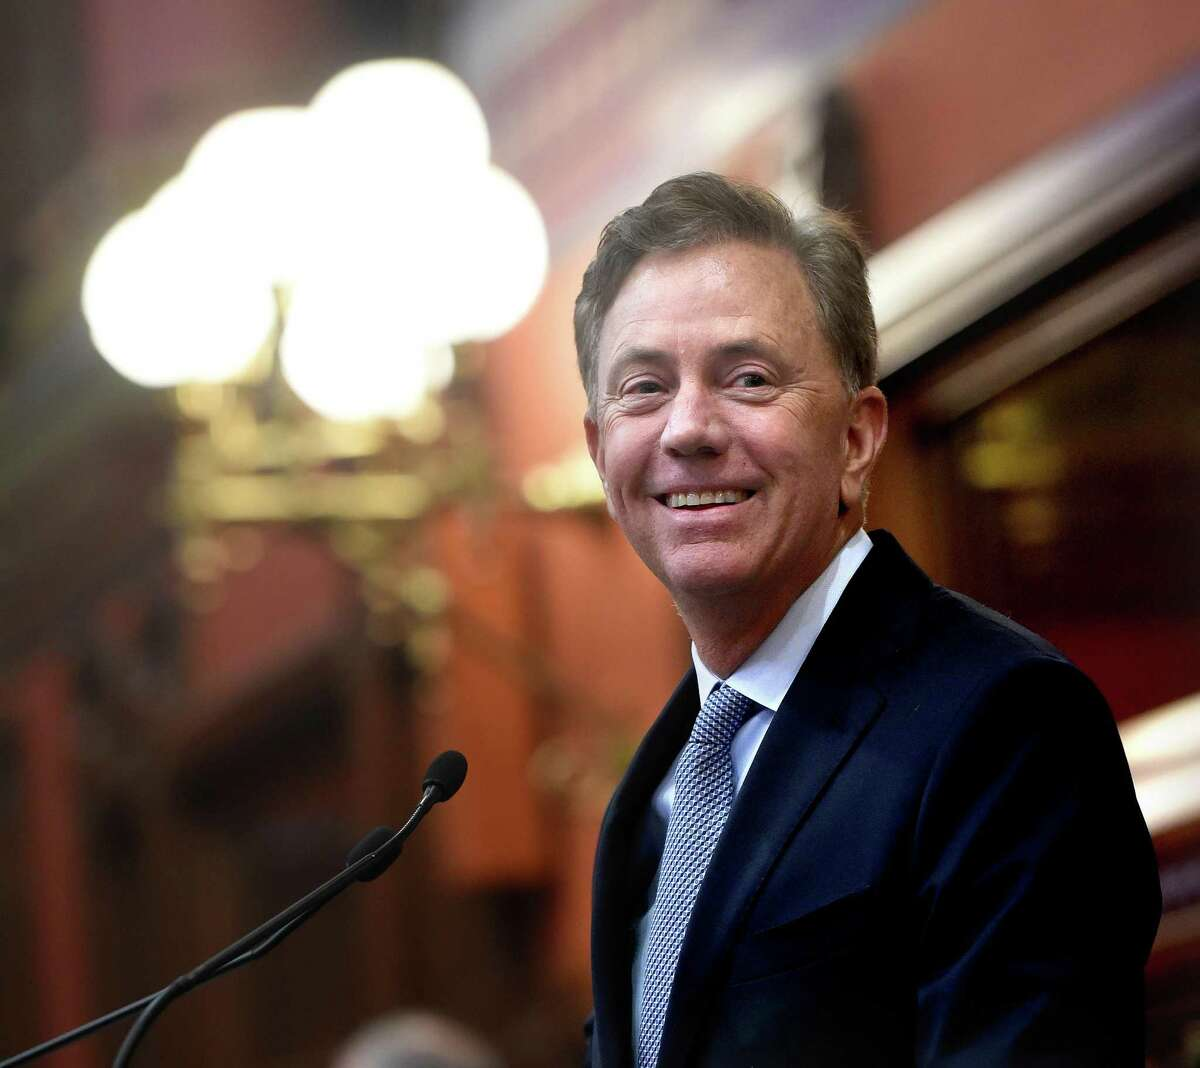 Governor Ned Lamont has introduced a 108-page legislative proposal for legalize marijuana sales for adults 21 and over.